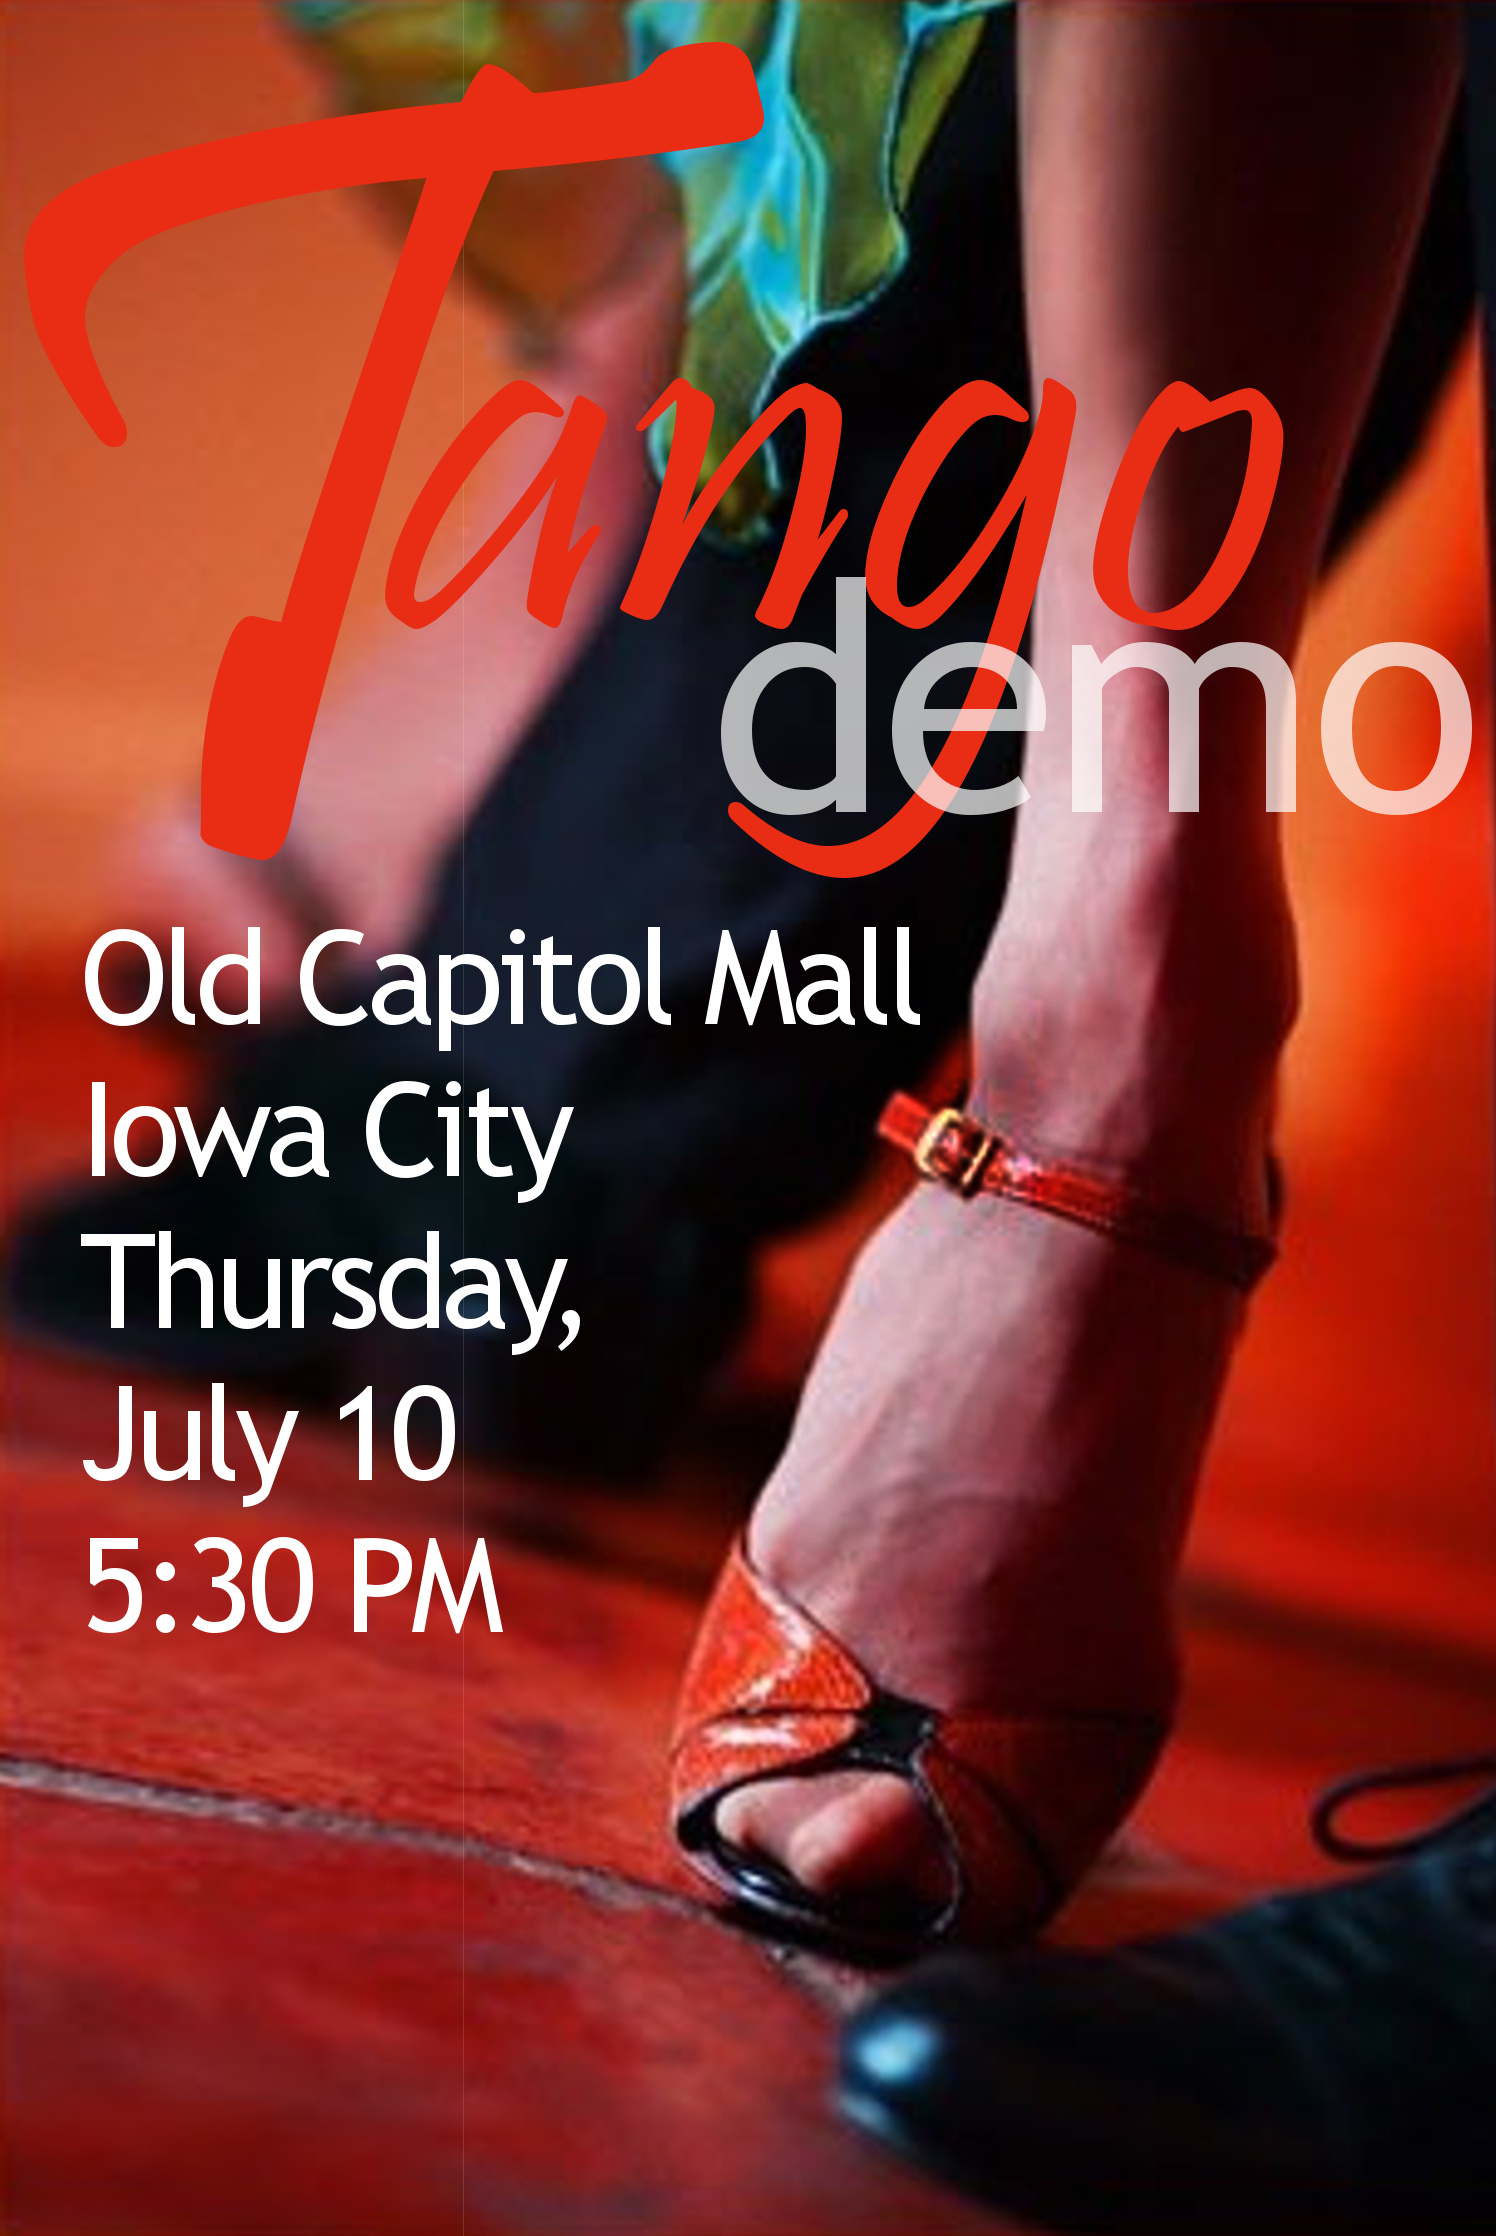 Tango Demo Social Media Post